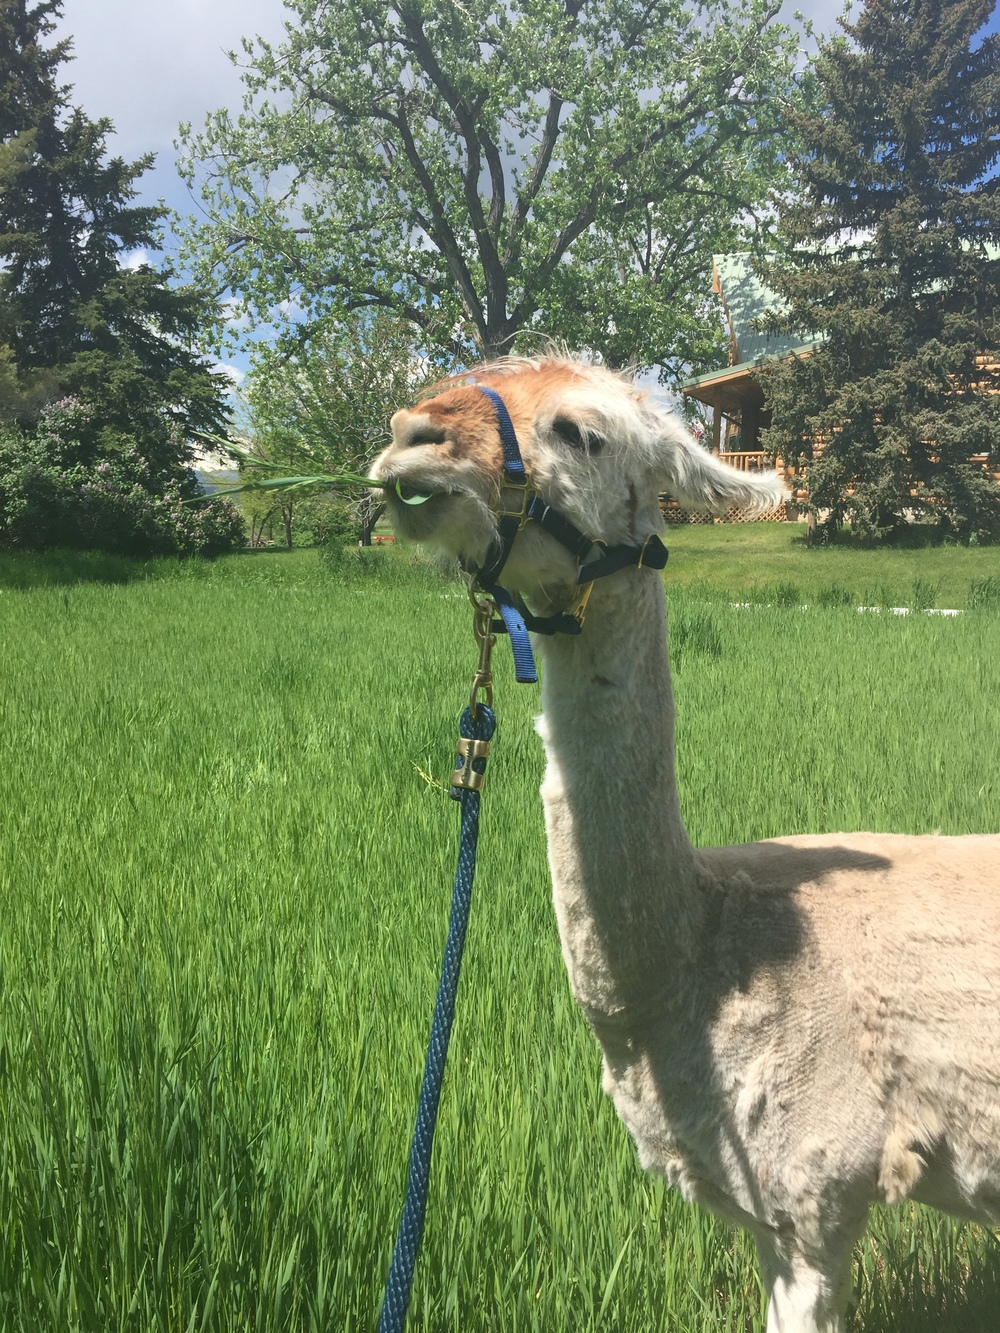 Hates the halter, loves the grass